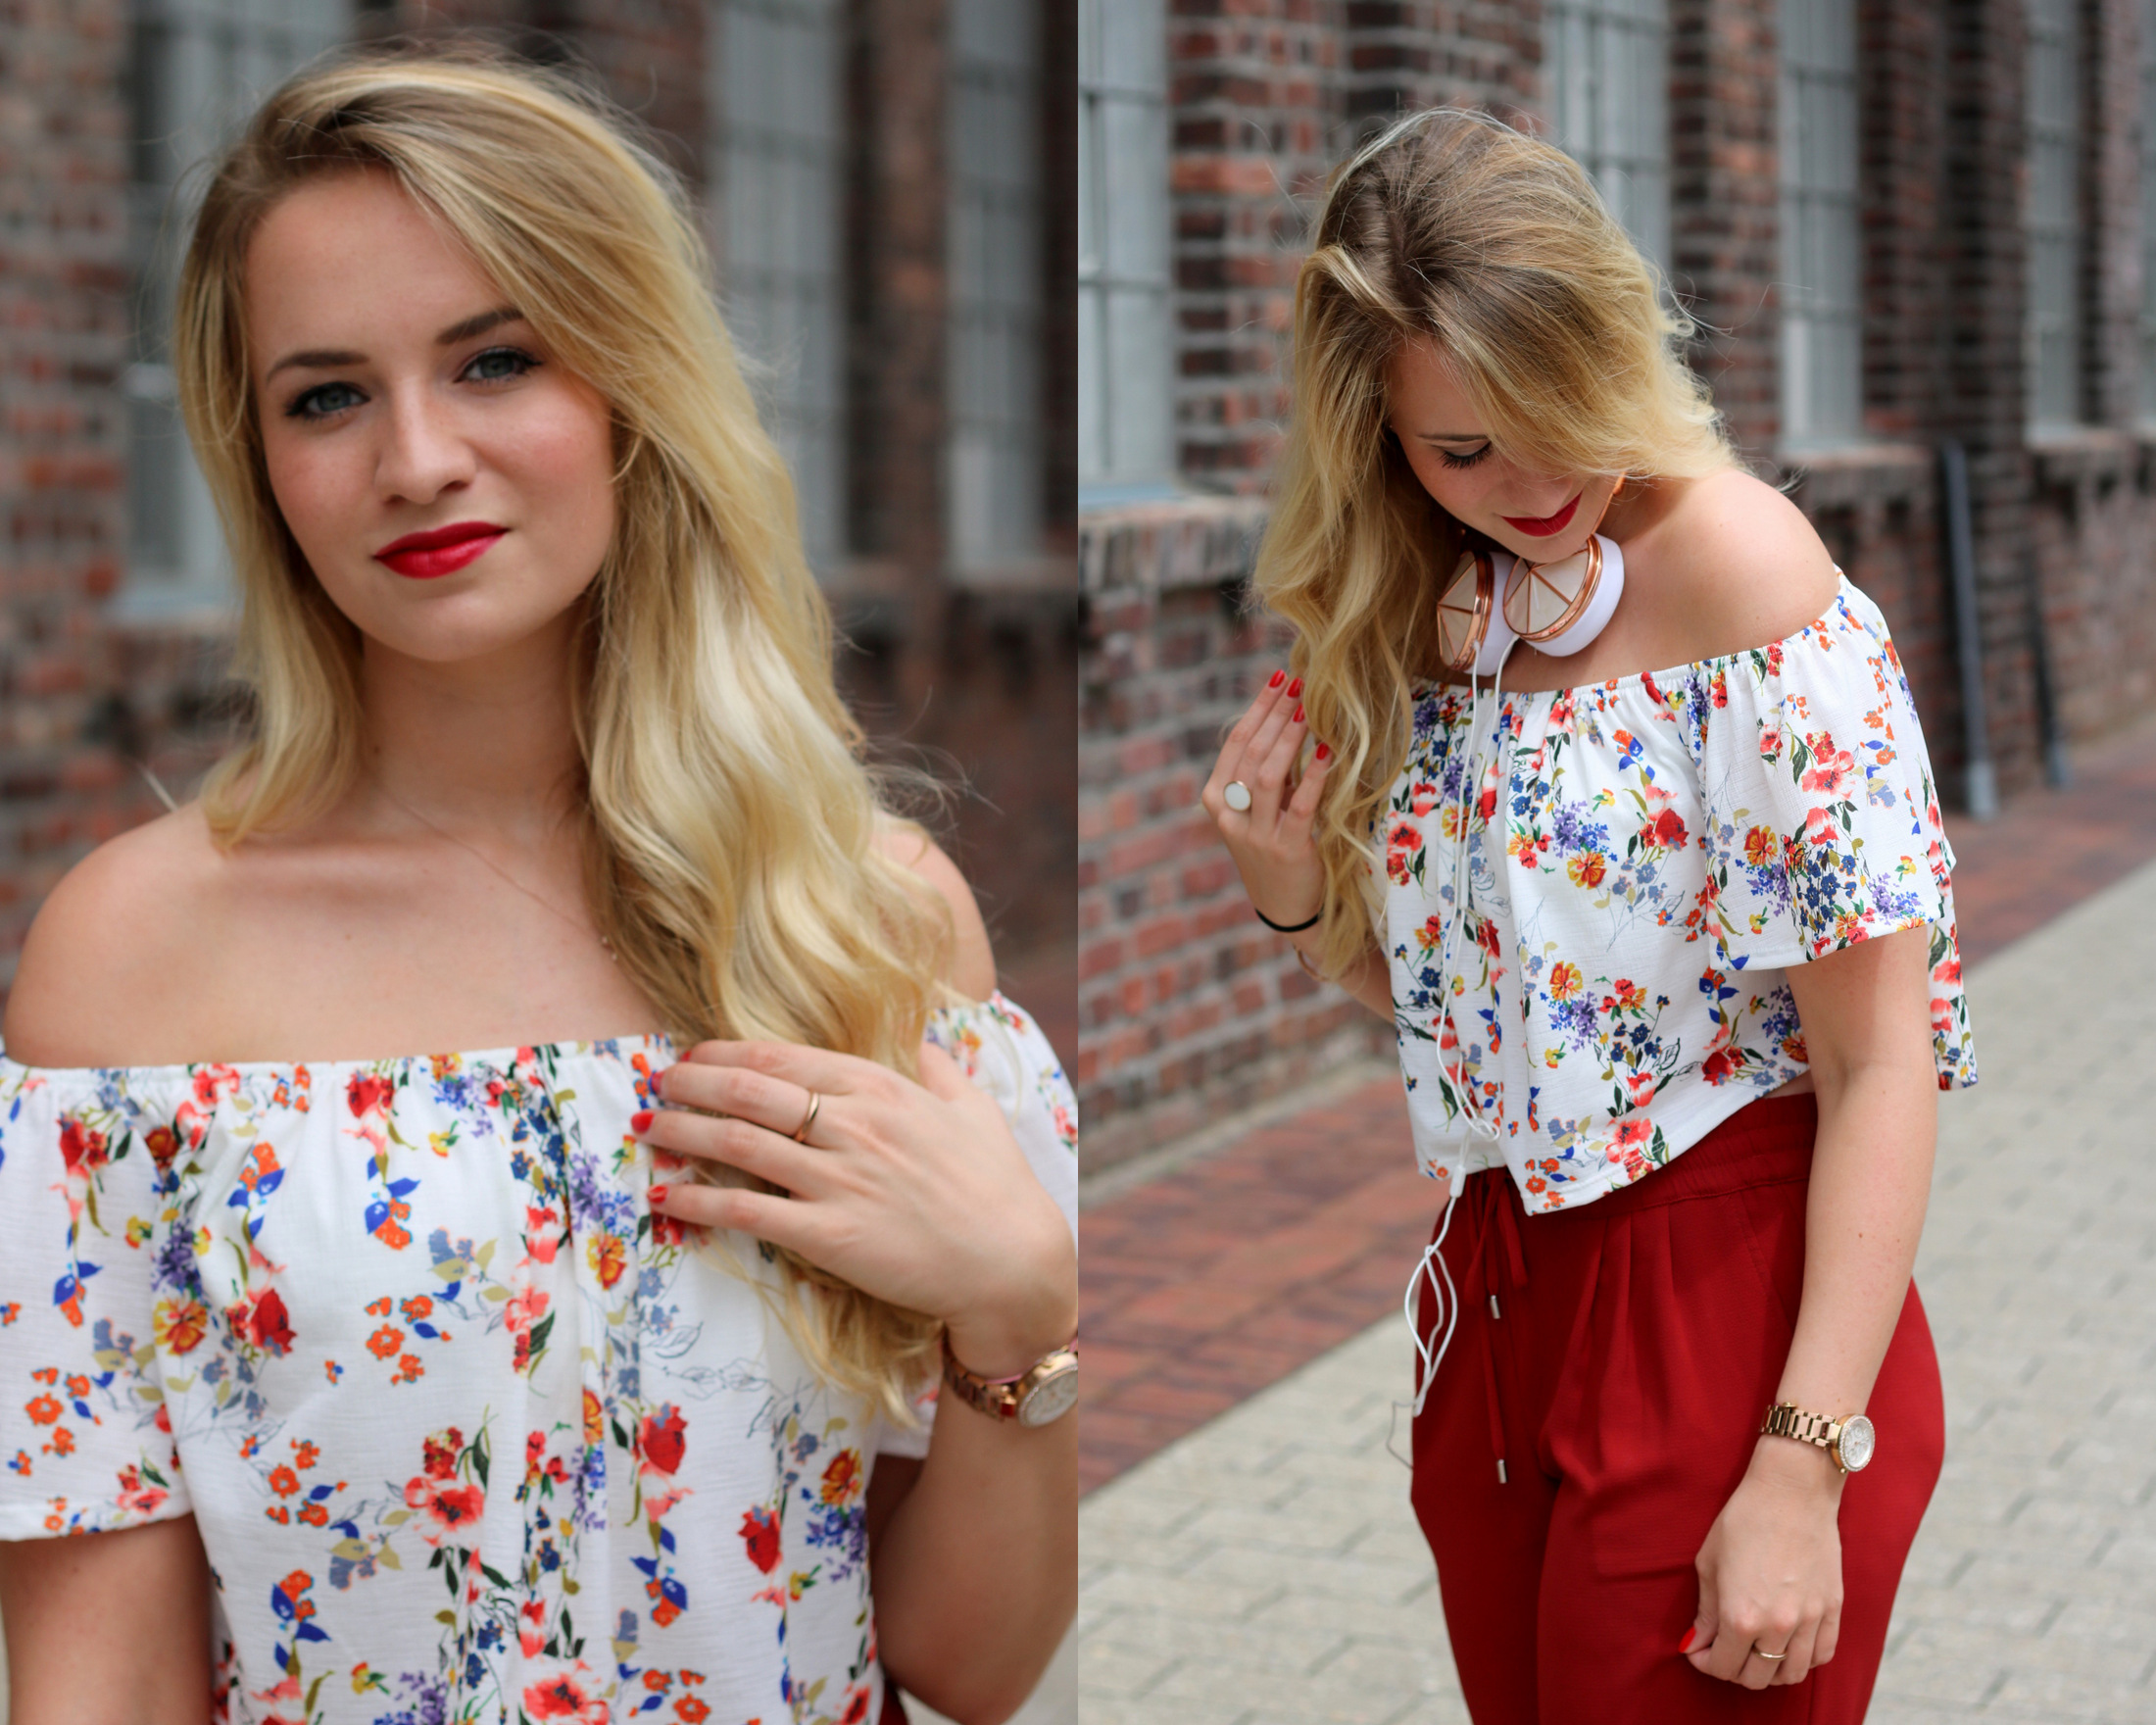 frends-headphones-kopfhörer-audio-musik-music-outfit-summer-early-look-zara-mrsbrightside (13)